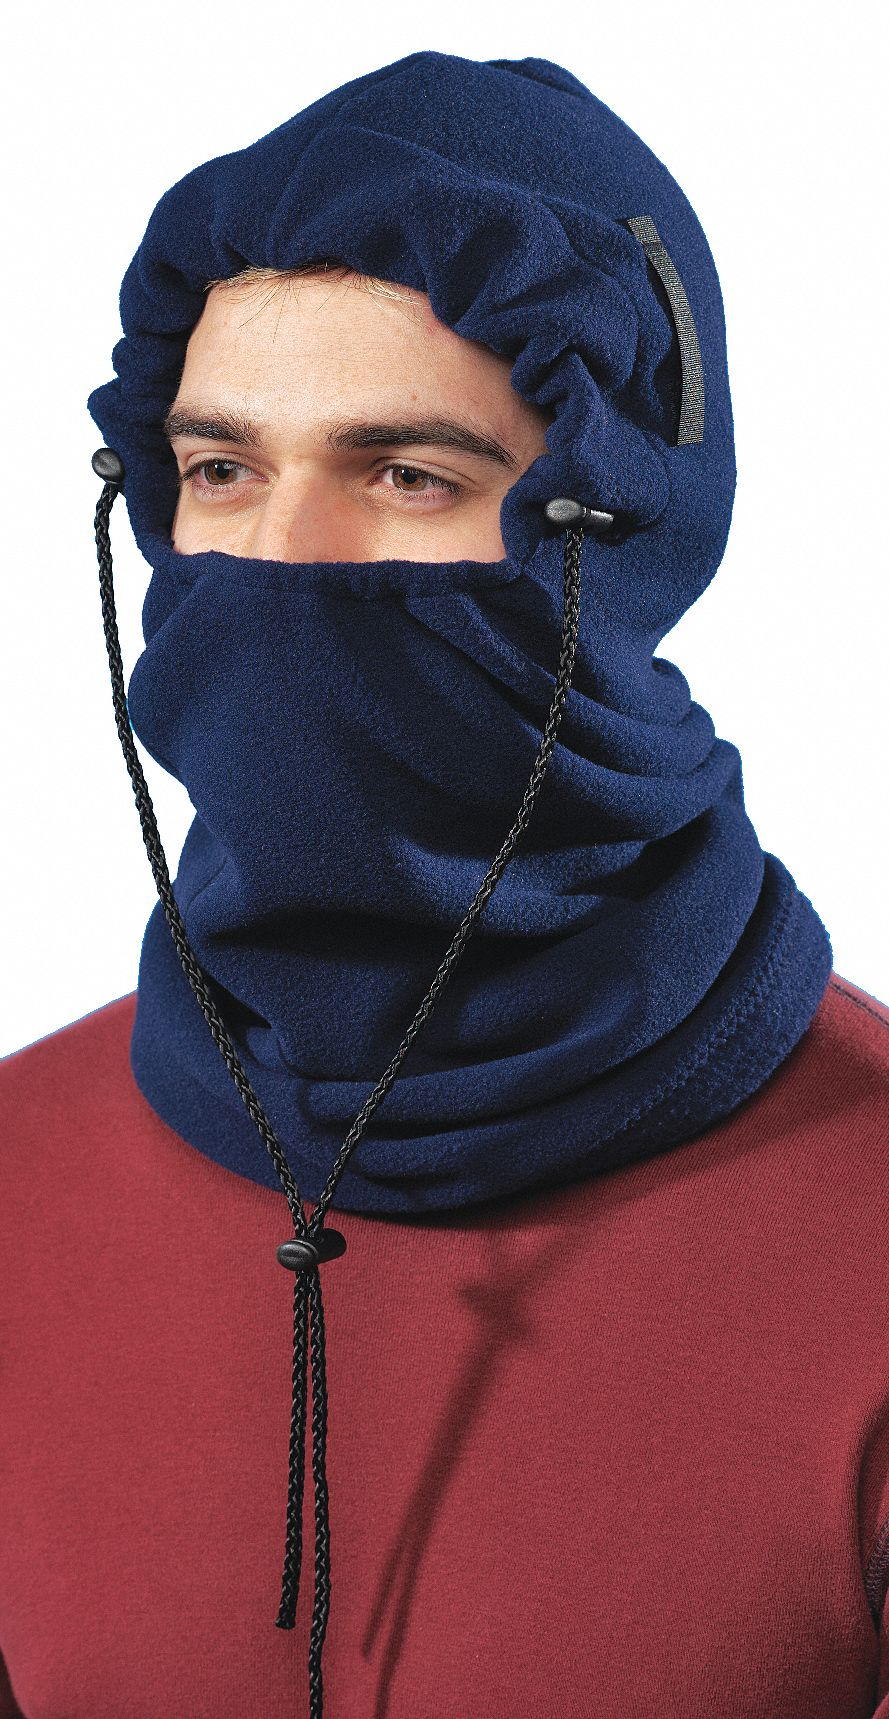 Winter Liner,  Universal,  Drawstring Adjustment Type,  Blue,  Covers Ears, Face, Head, Neck